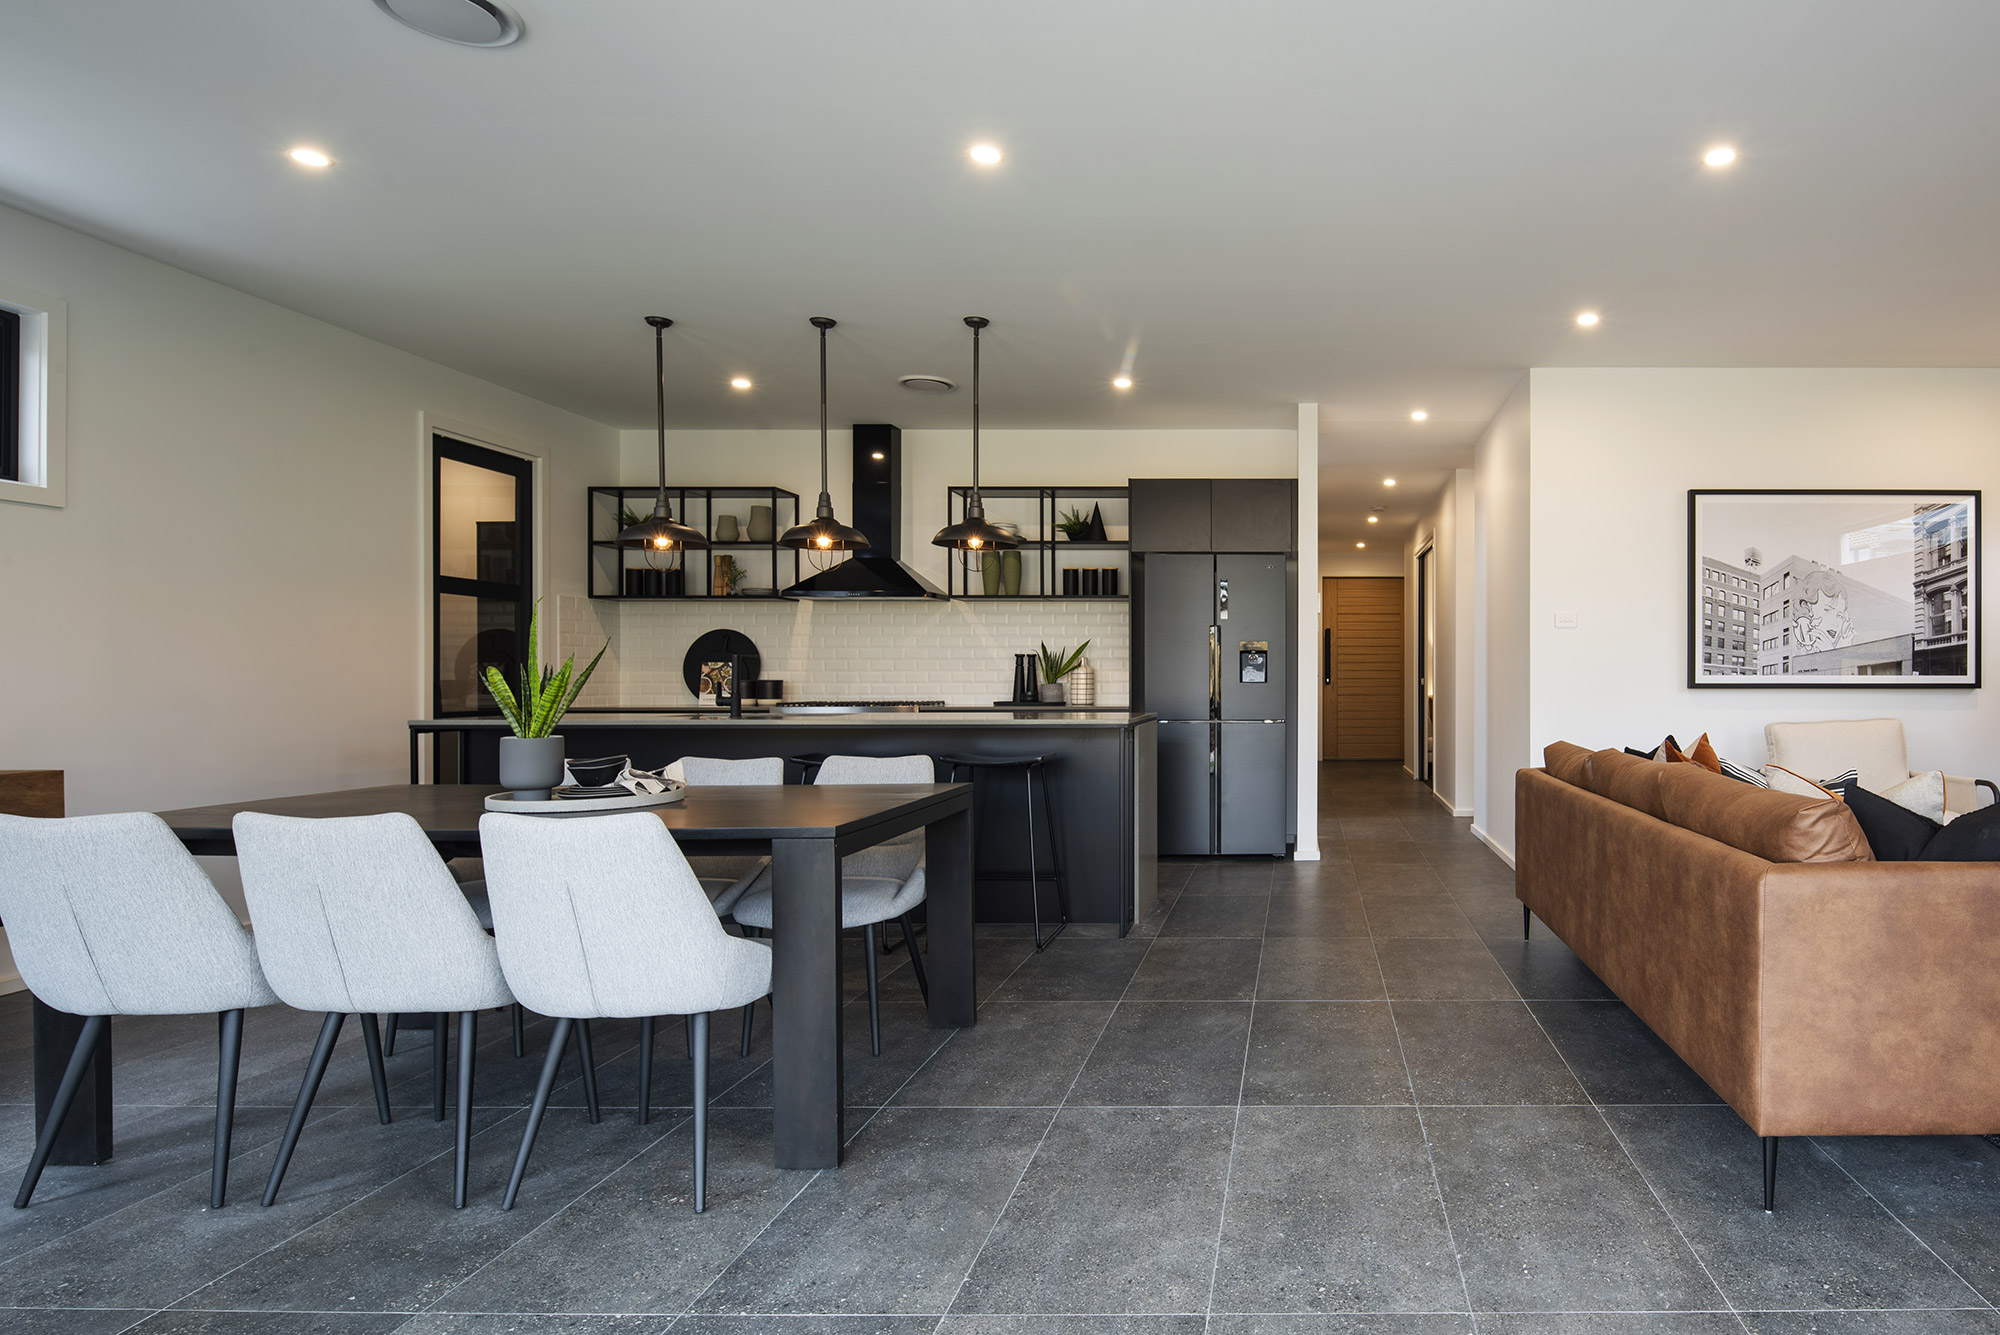 Cayman living and kitchen area